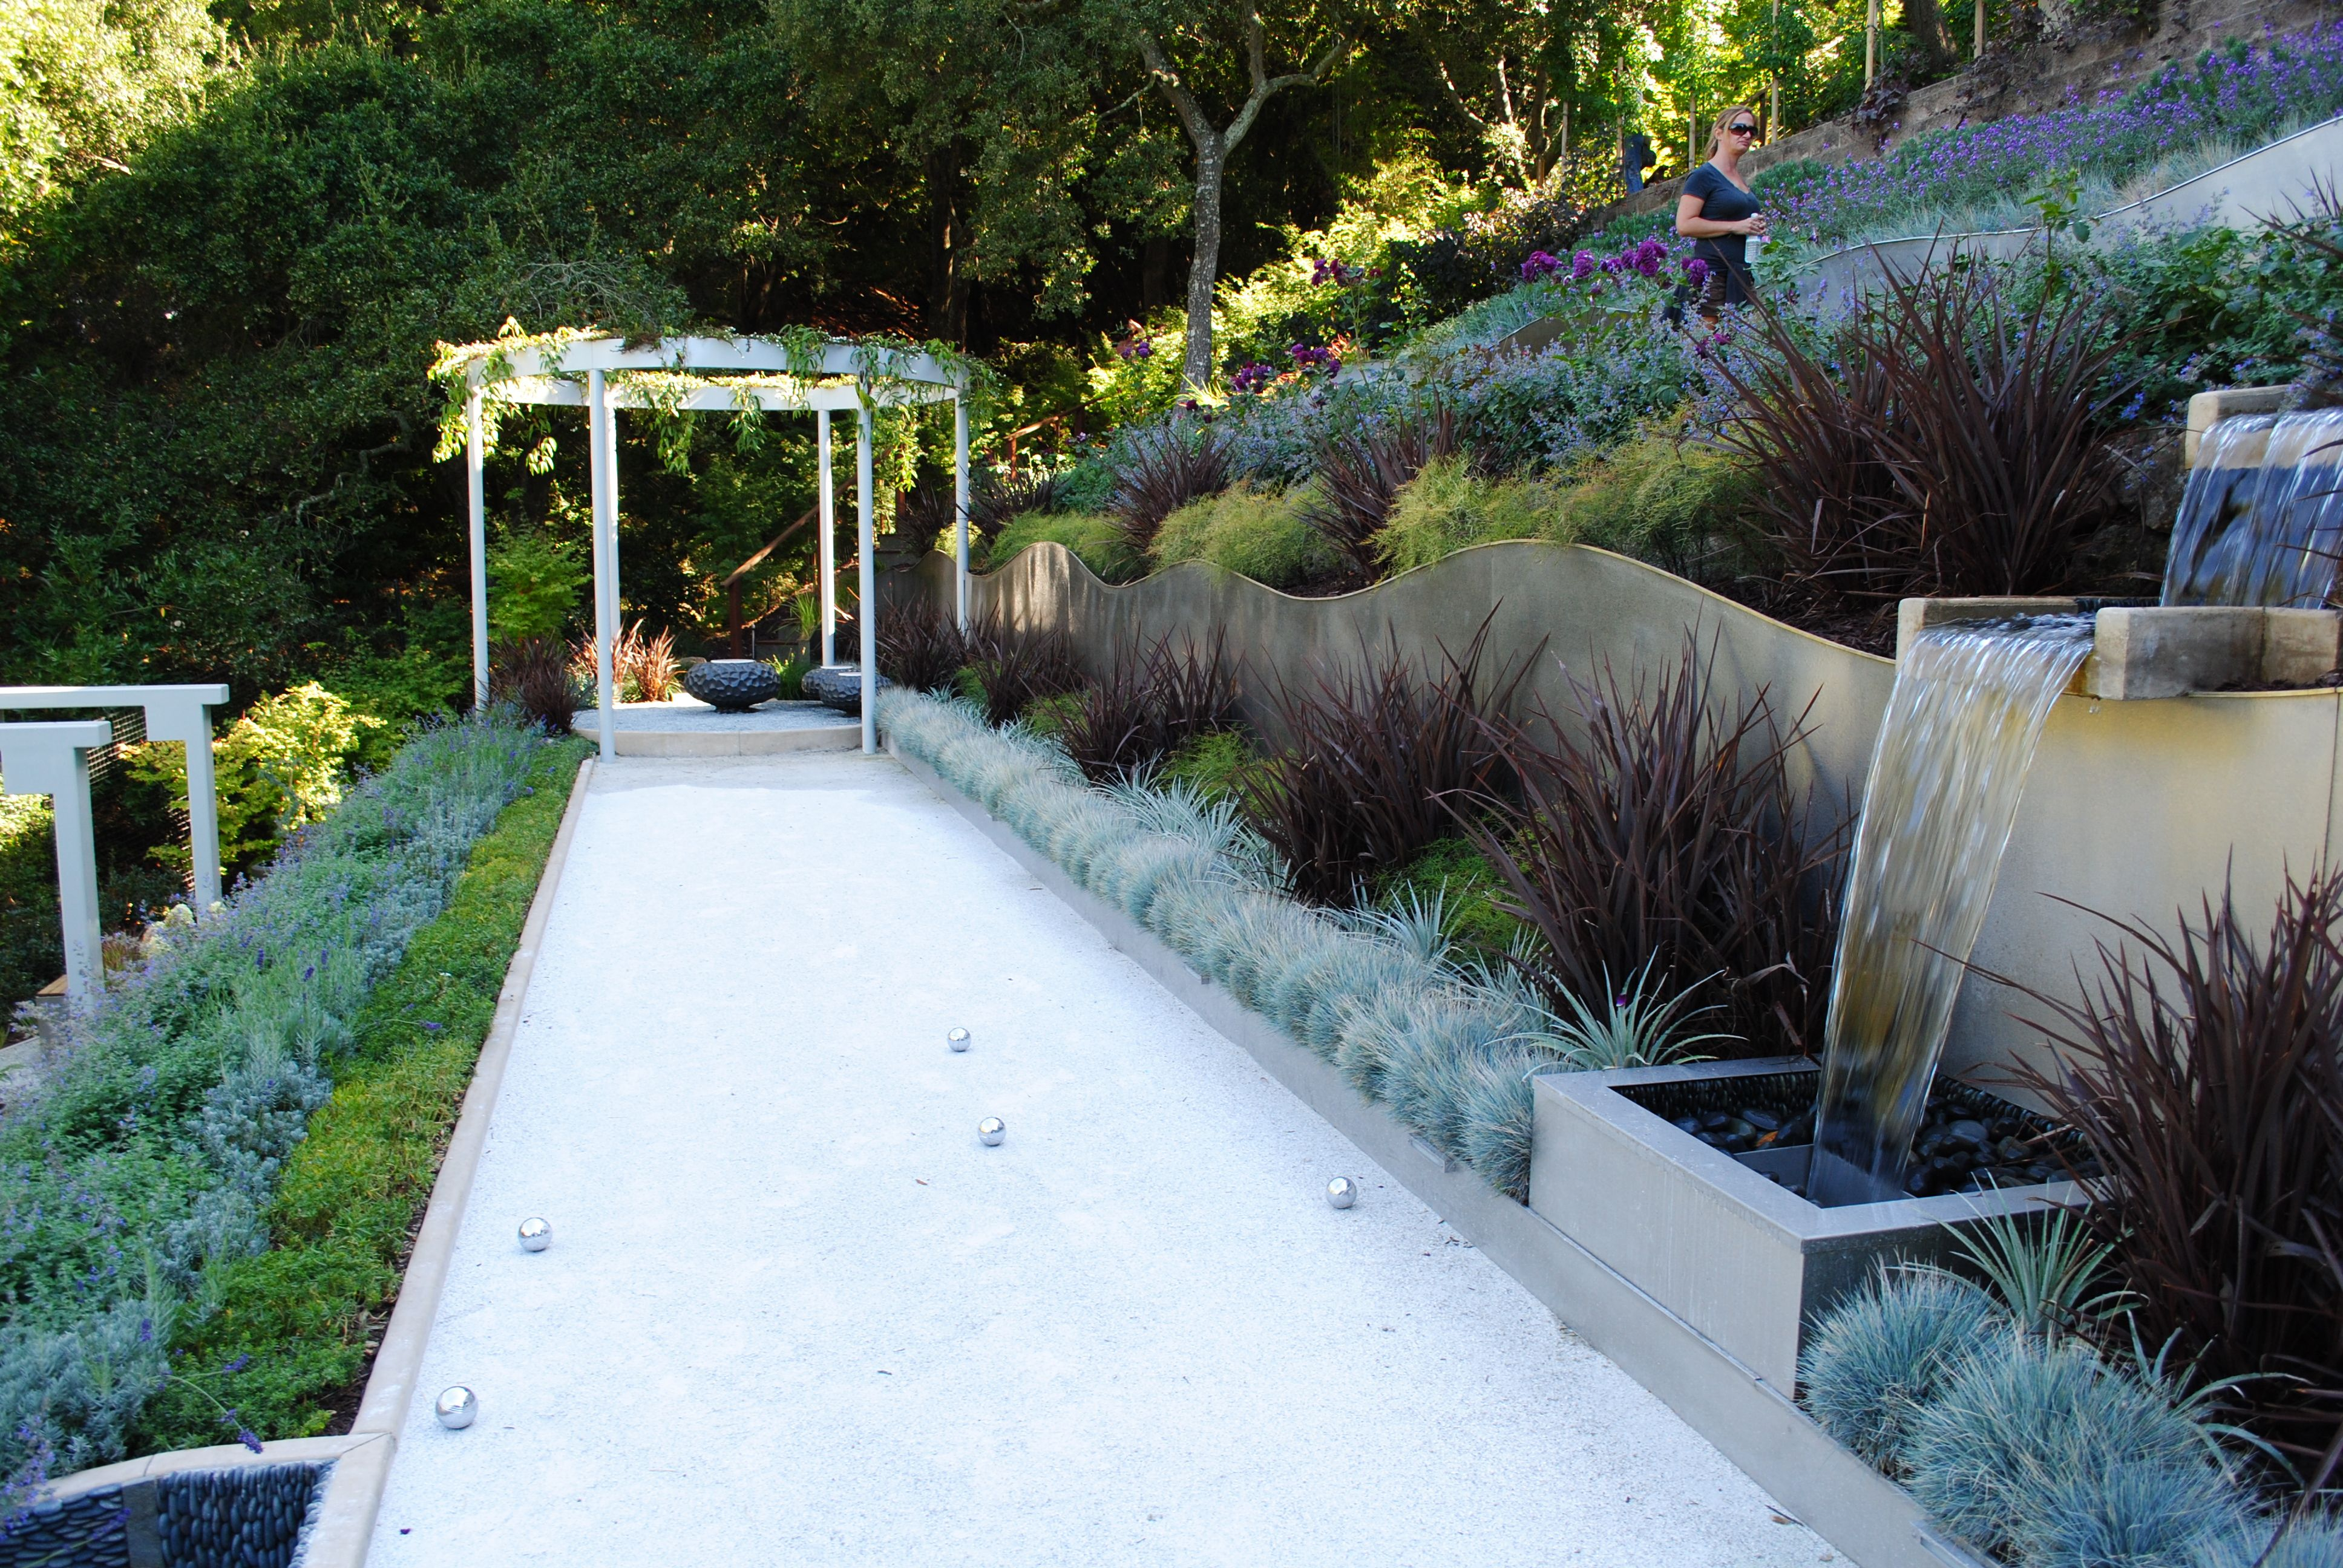 Bocce ball court with Pergola seating area!! It! in ... on roof garden design, florida garden design, interior garden design, tree garden design, landscape design, home and garden design, garden design product, beautiful garden design, city garden design, garden sheds, small front yard design, food garden design, japanese garden design, garden stage design, small garden design, kitchen design, vertical garden design, herb garden design, greenhouse design, garden bedroom design,